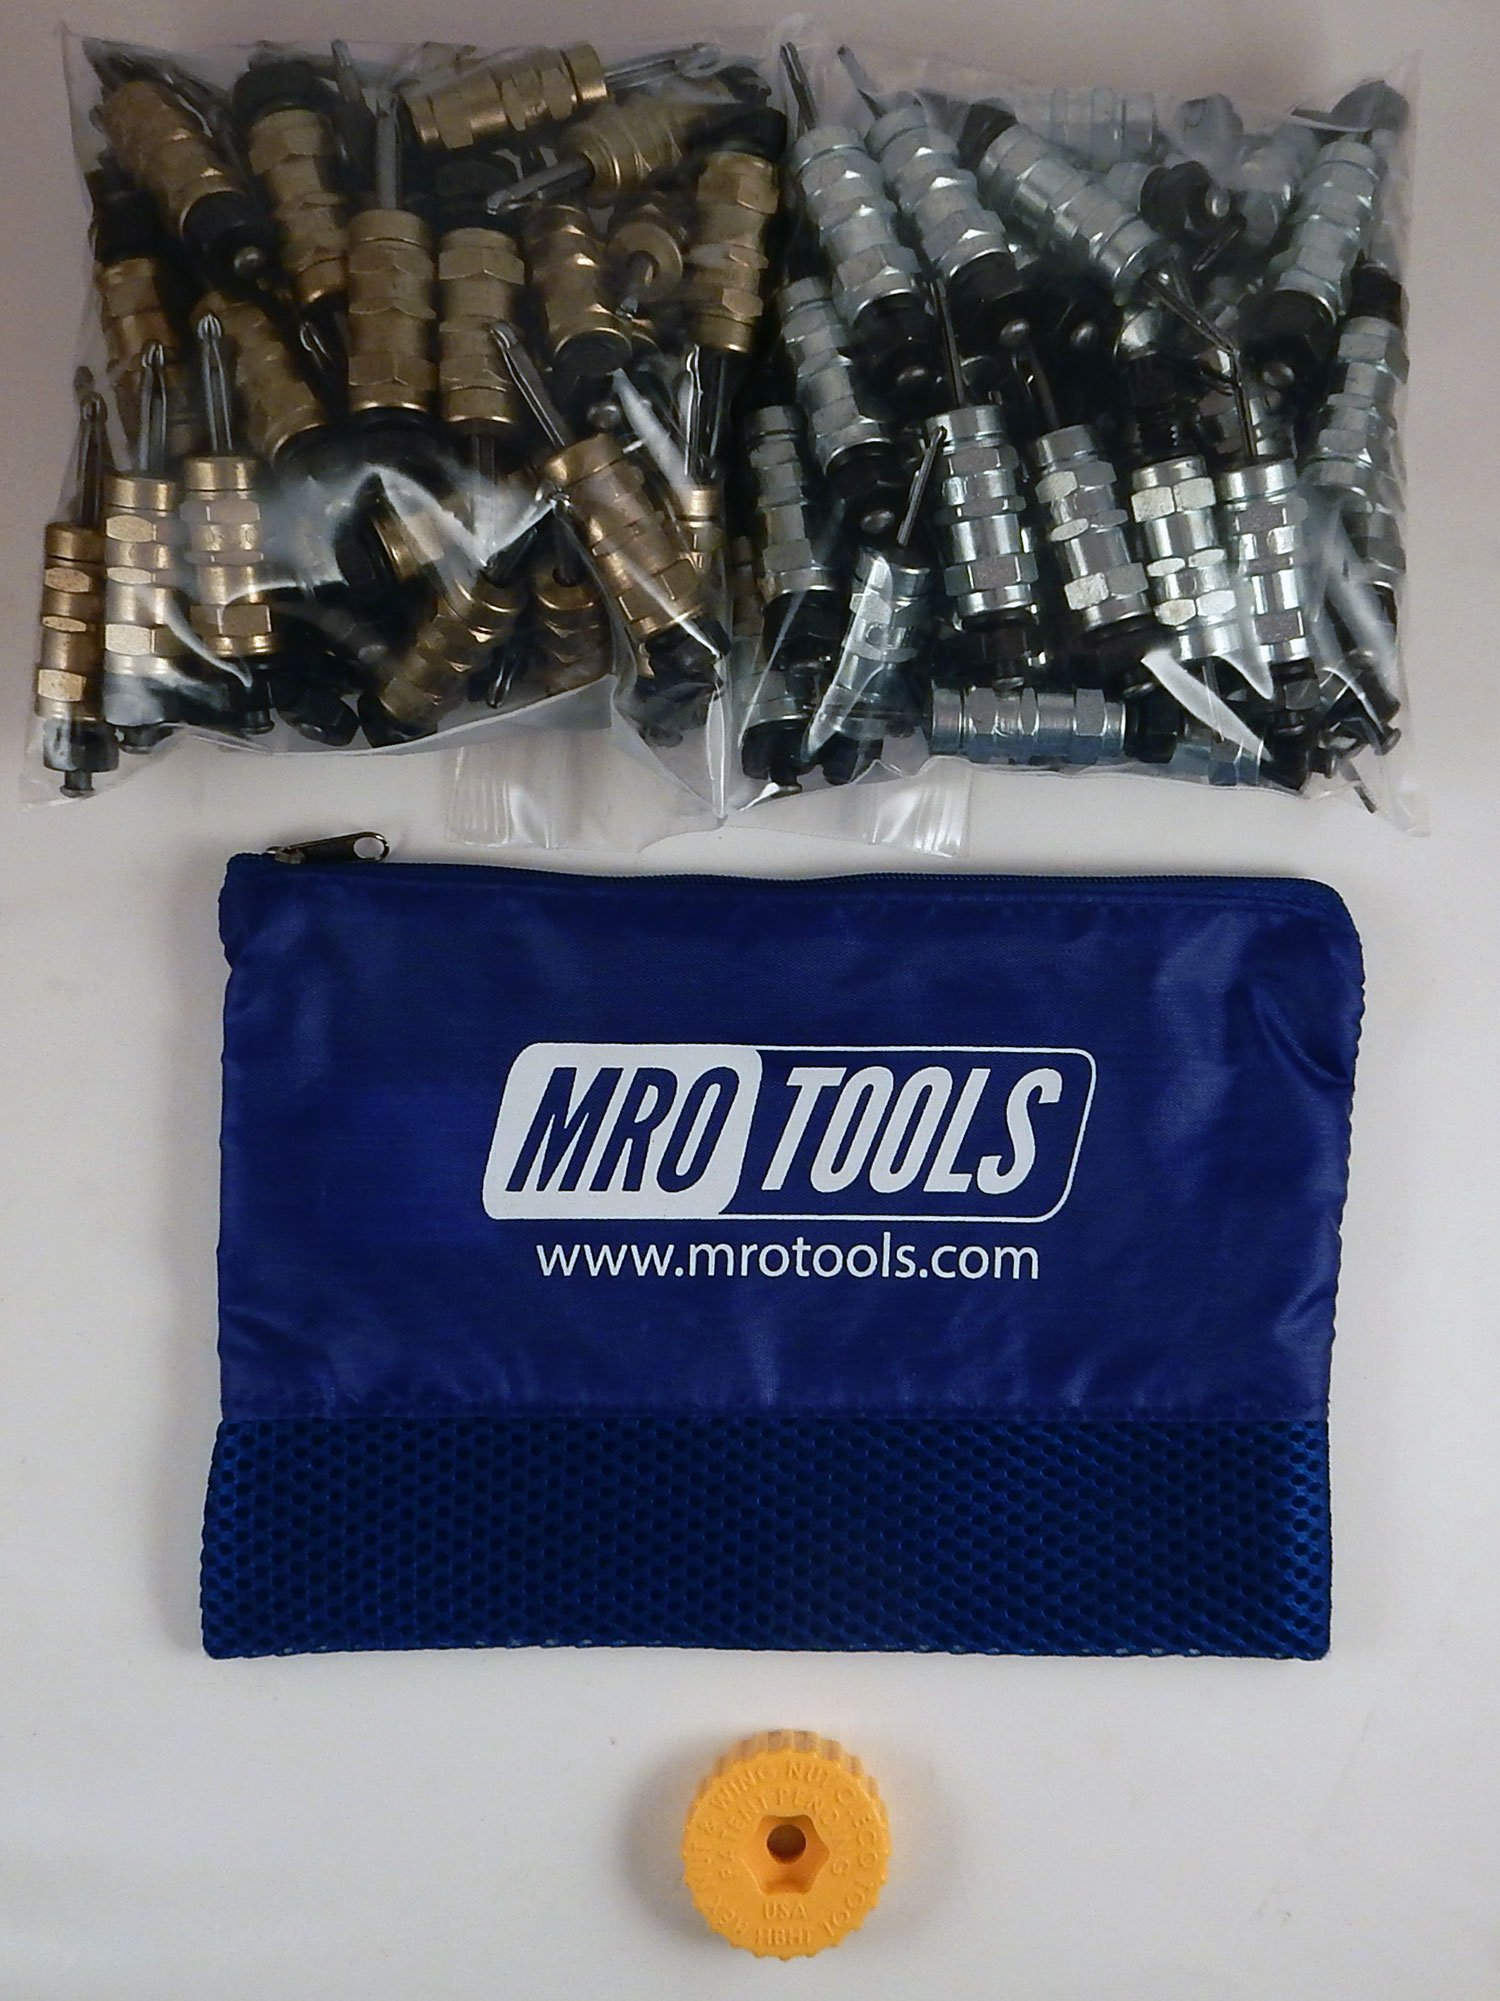 50 3/16 & 50 3/32 Standard Hex-Nut Cleco Fastener w/ HBHT Tool & Bag (KHN4S100-5) by MRO Tools Cleco Fasteners